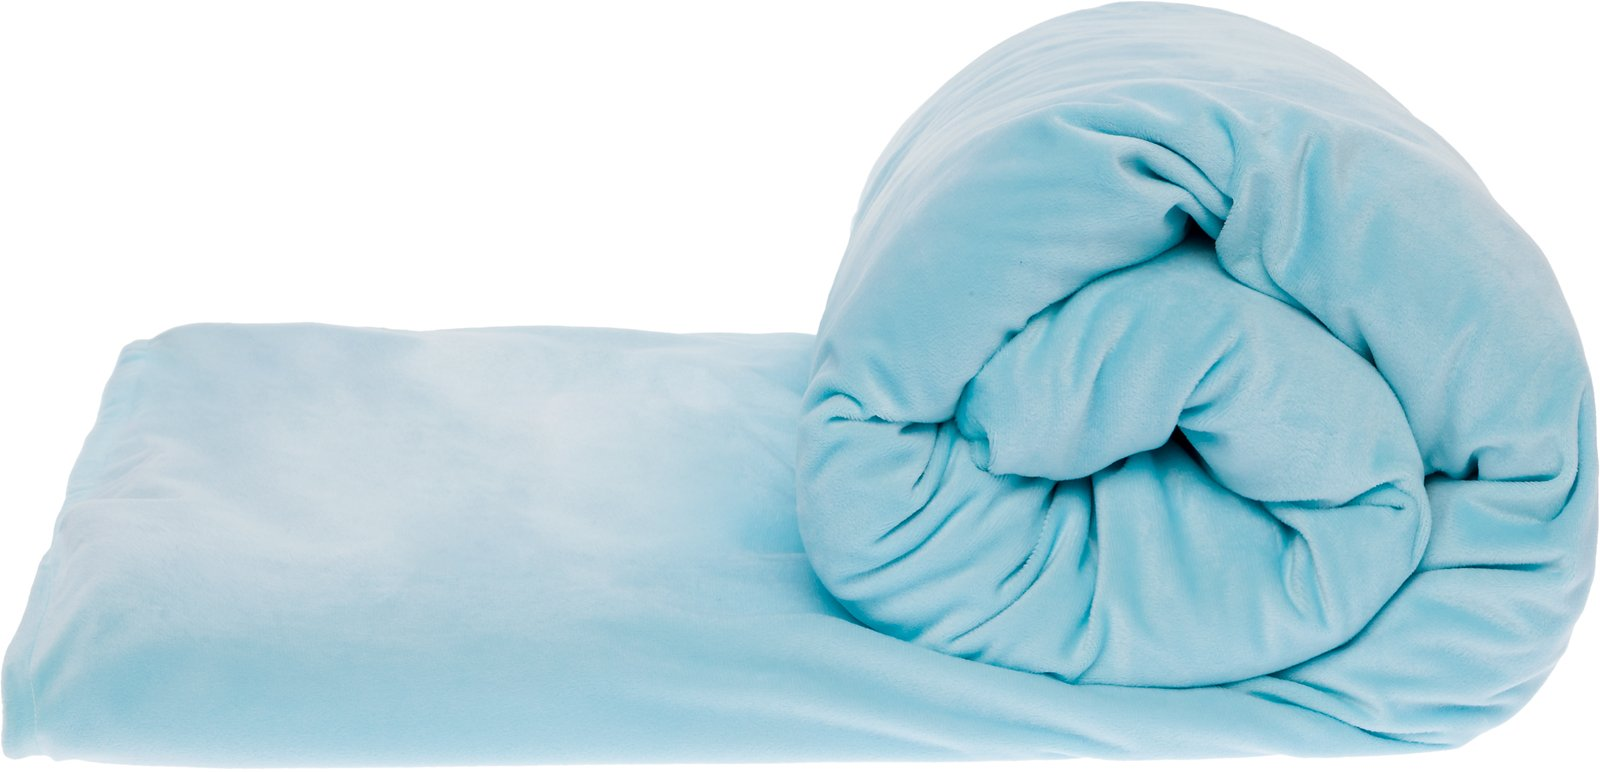 Mindful Design Adult Weighted Blanket with Removable Minky Duvet Cover - Gravity Sensory Blanket for Anxiety and Stress Relief, Faster and Deeper Sleep (Teal, 15 Lbs)